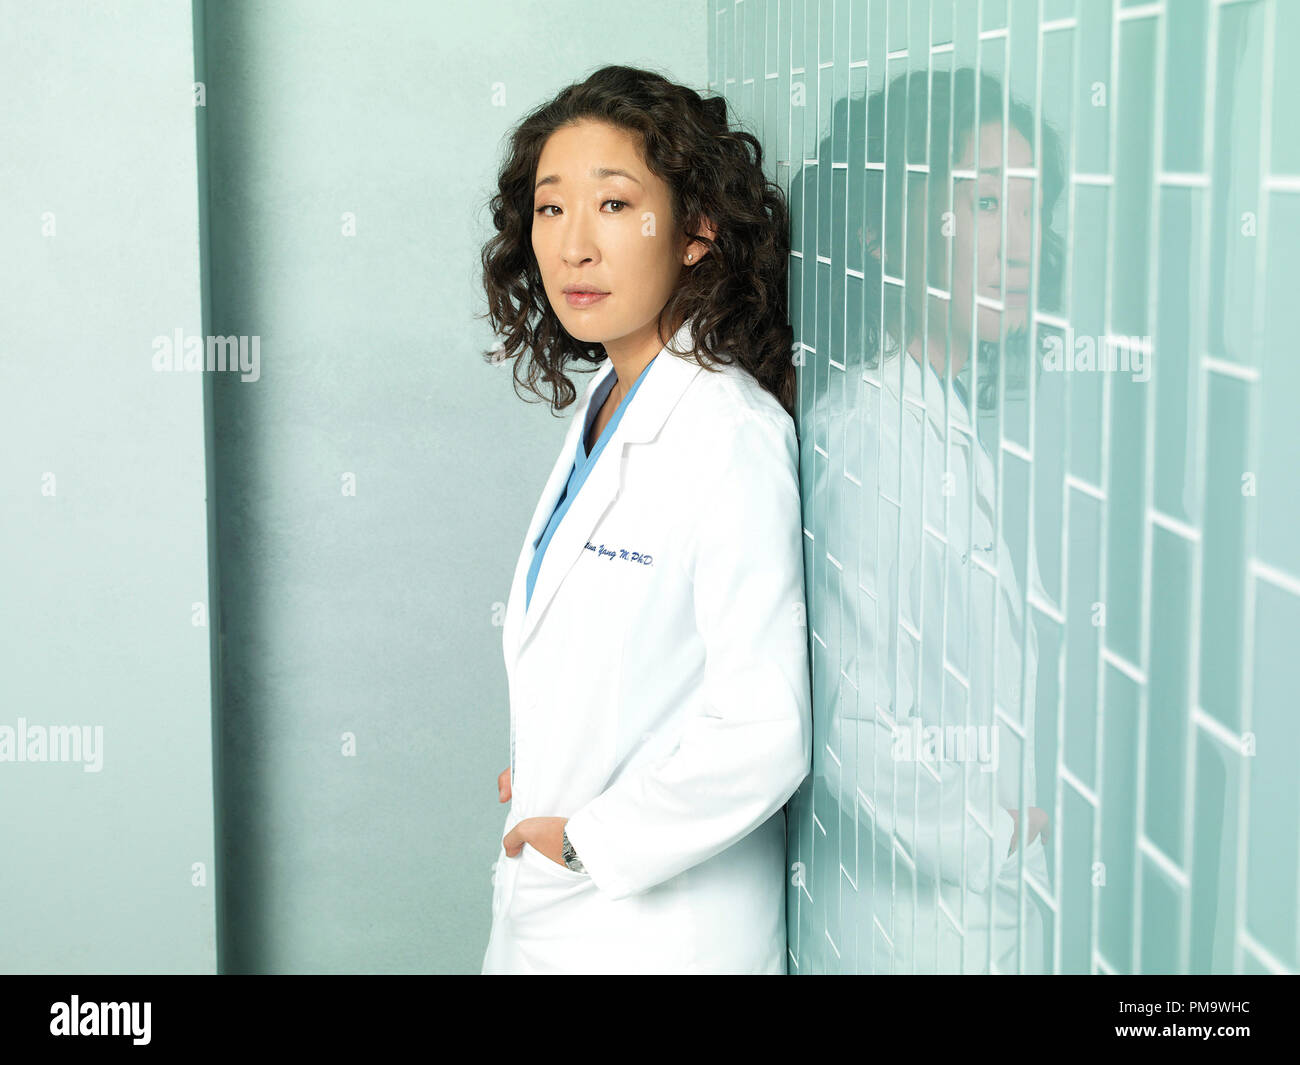 GREY'S ANATOMY - ABC's 'Grey's Anatomy' stars Sandra Oh as Cristina Yang. - Stock Image